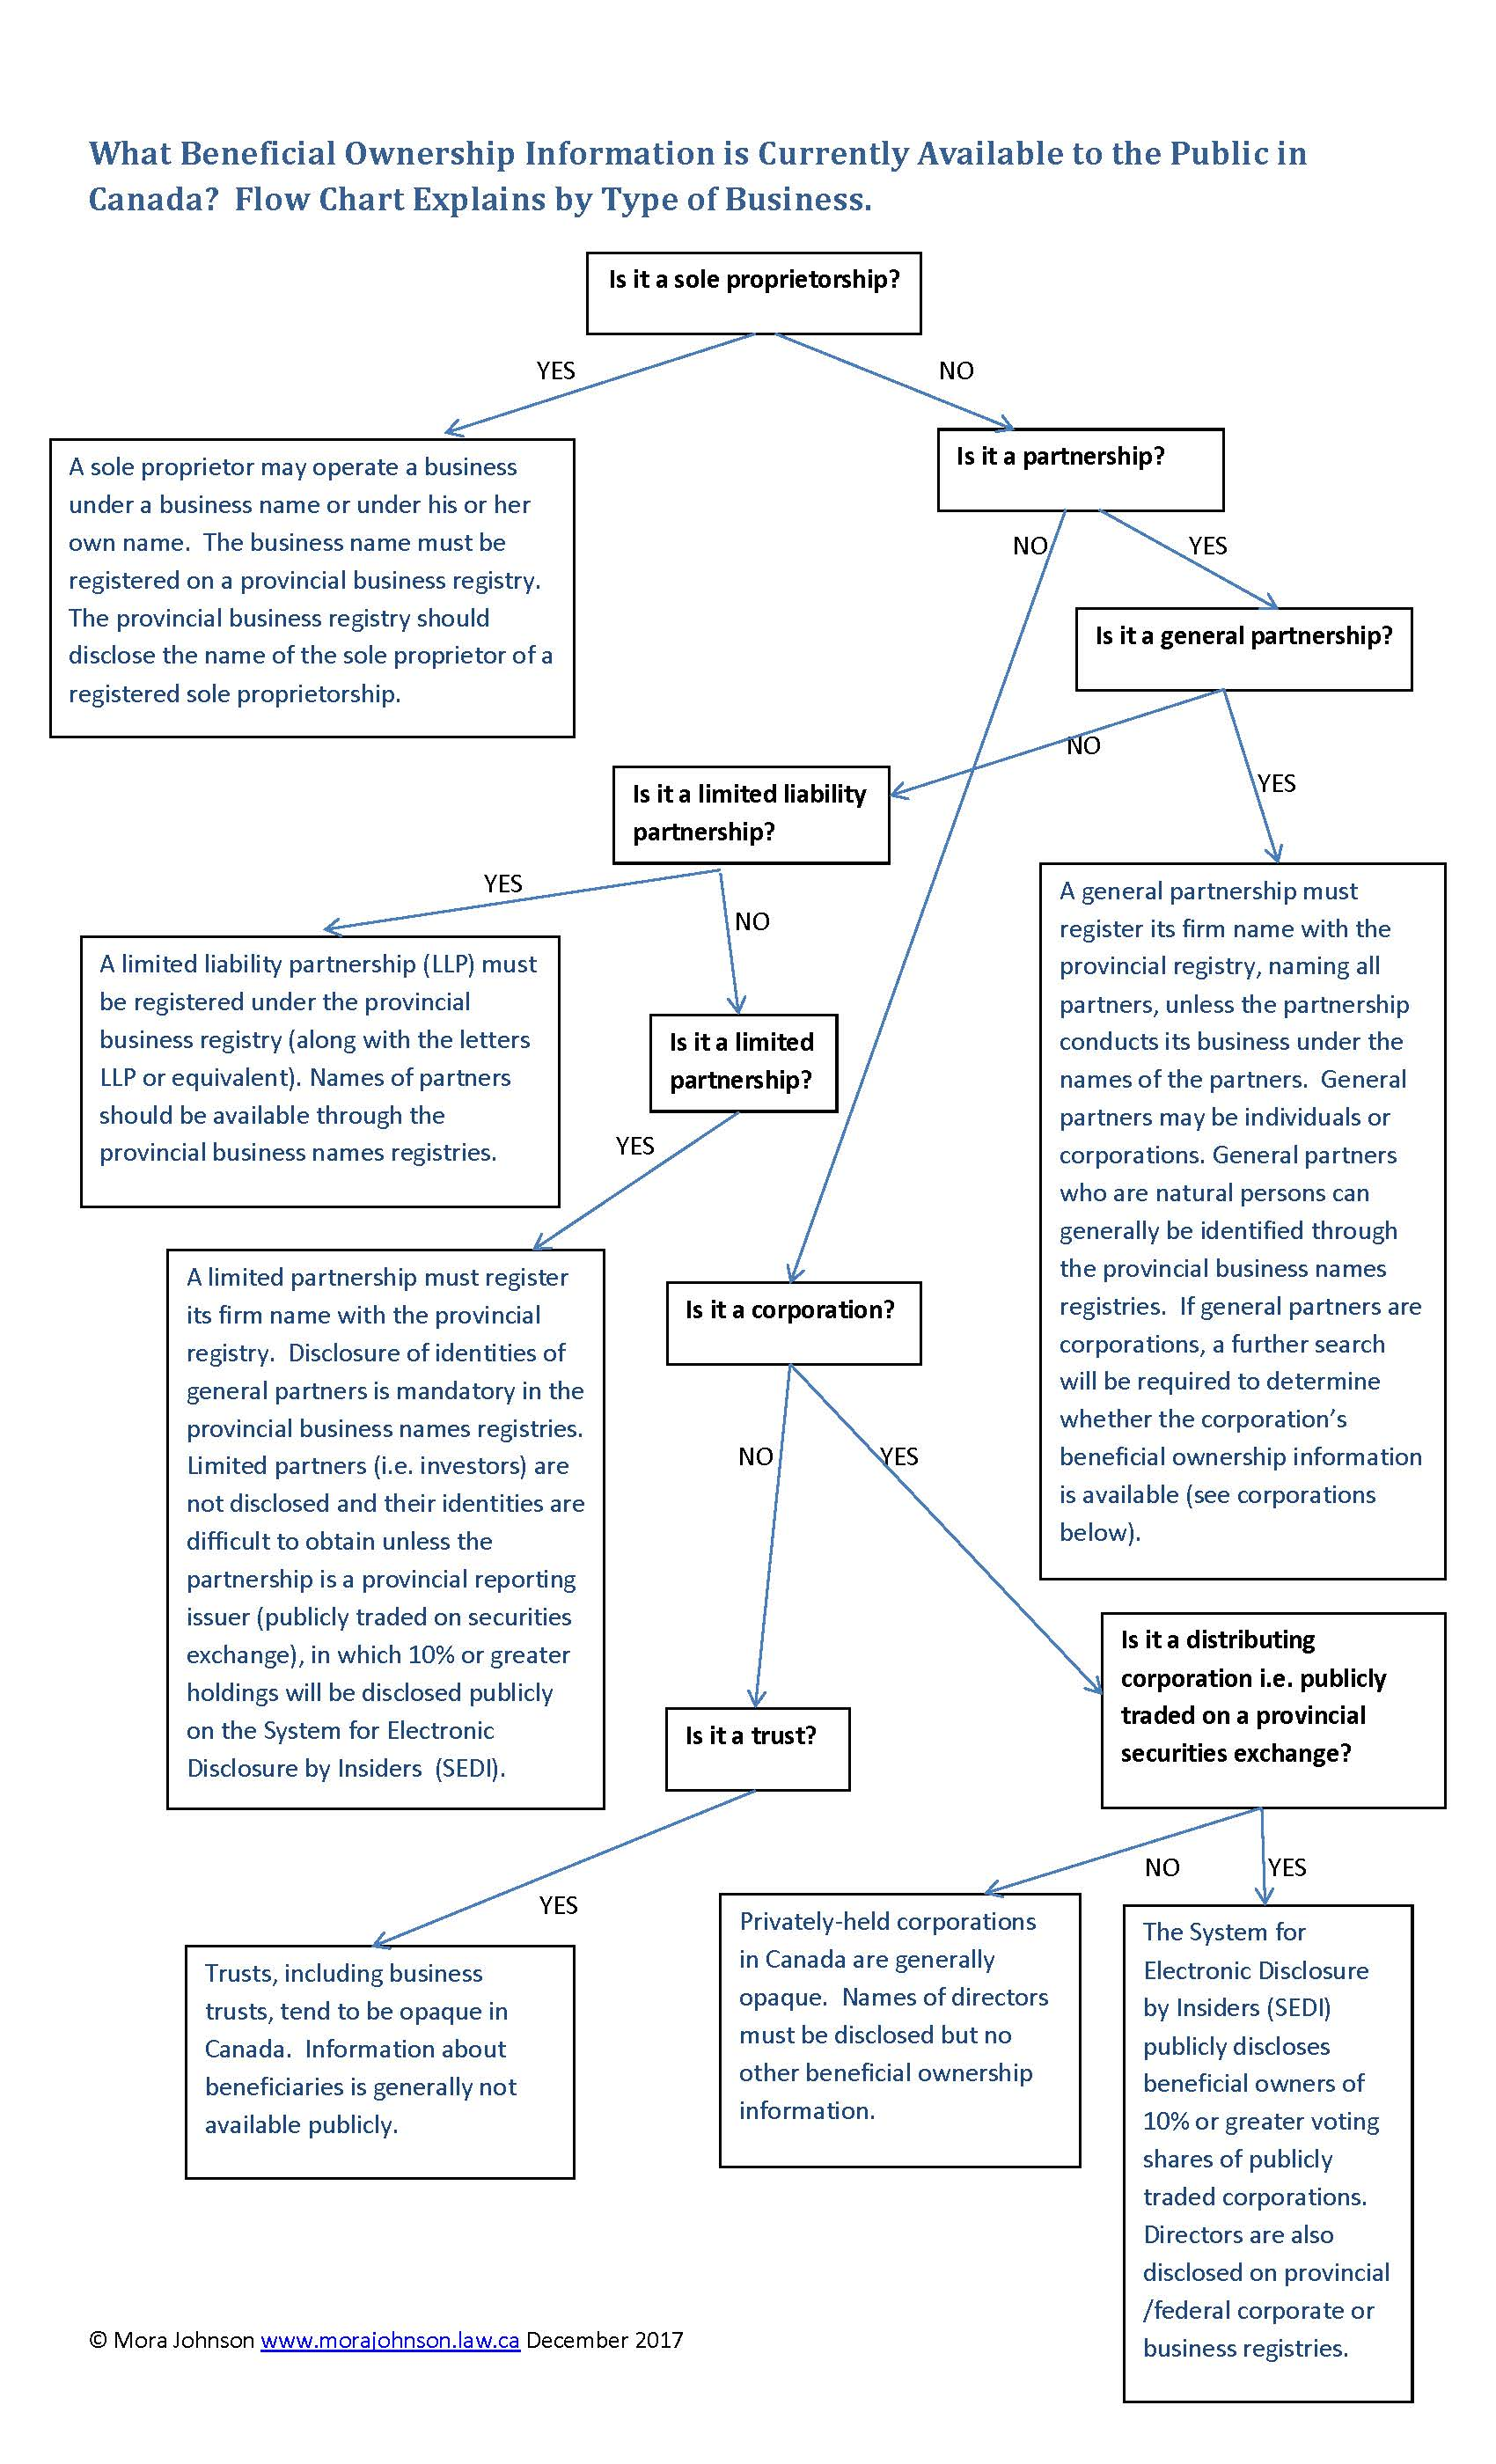 Beneficial Ownership Transparency Flow Chart.jpg